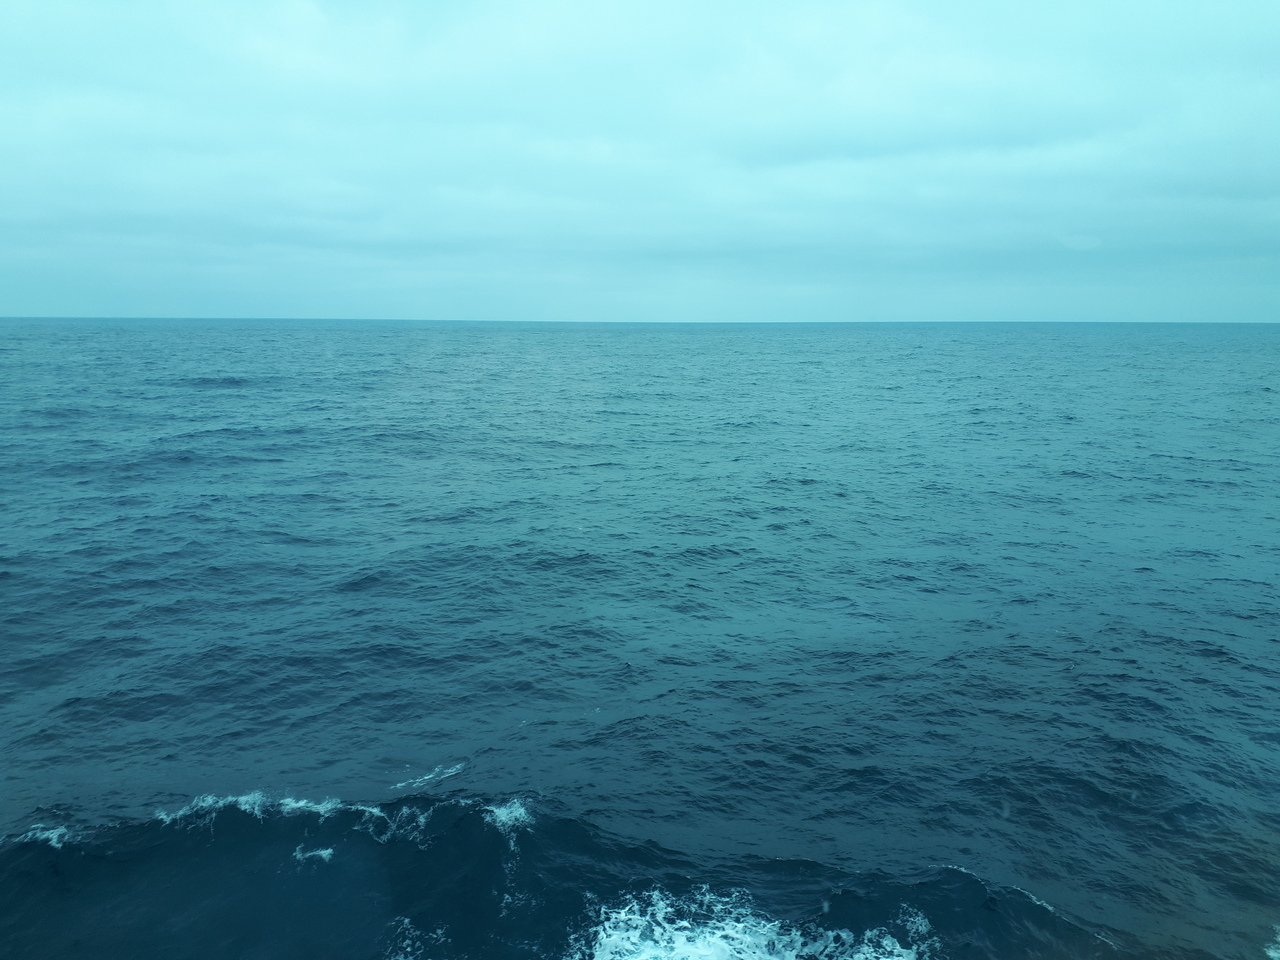 The sea, stretching out as far as I can sea... Get it? Sea?! Hahahaha